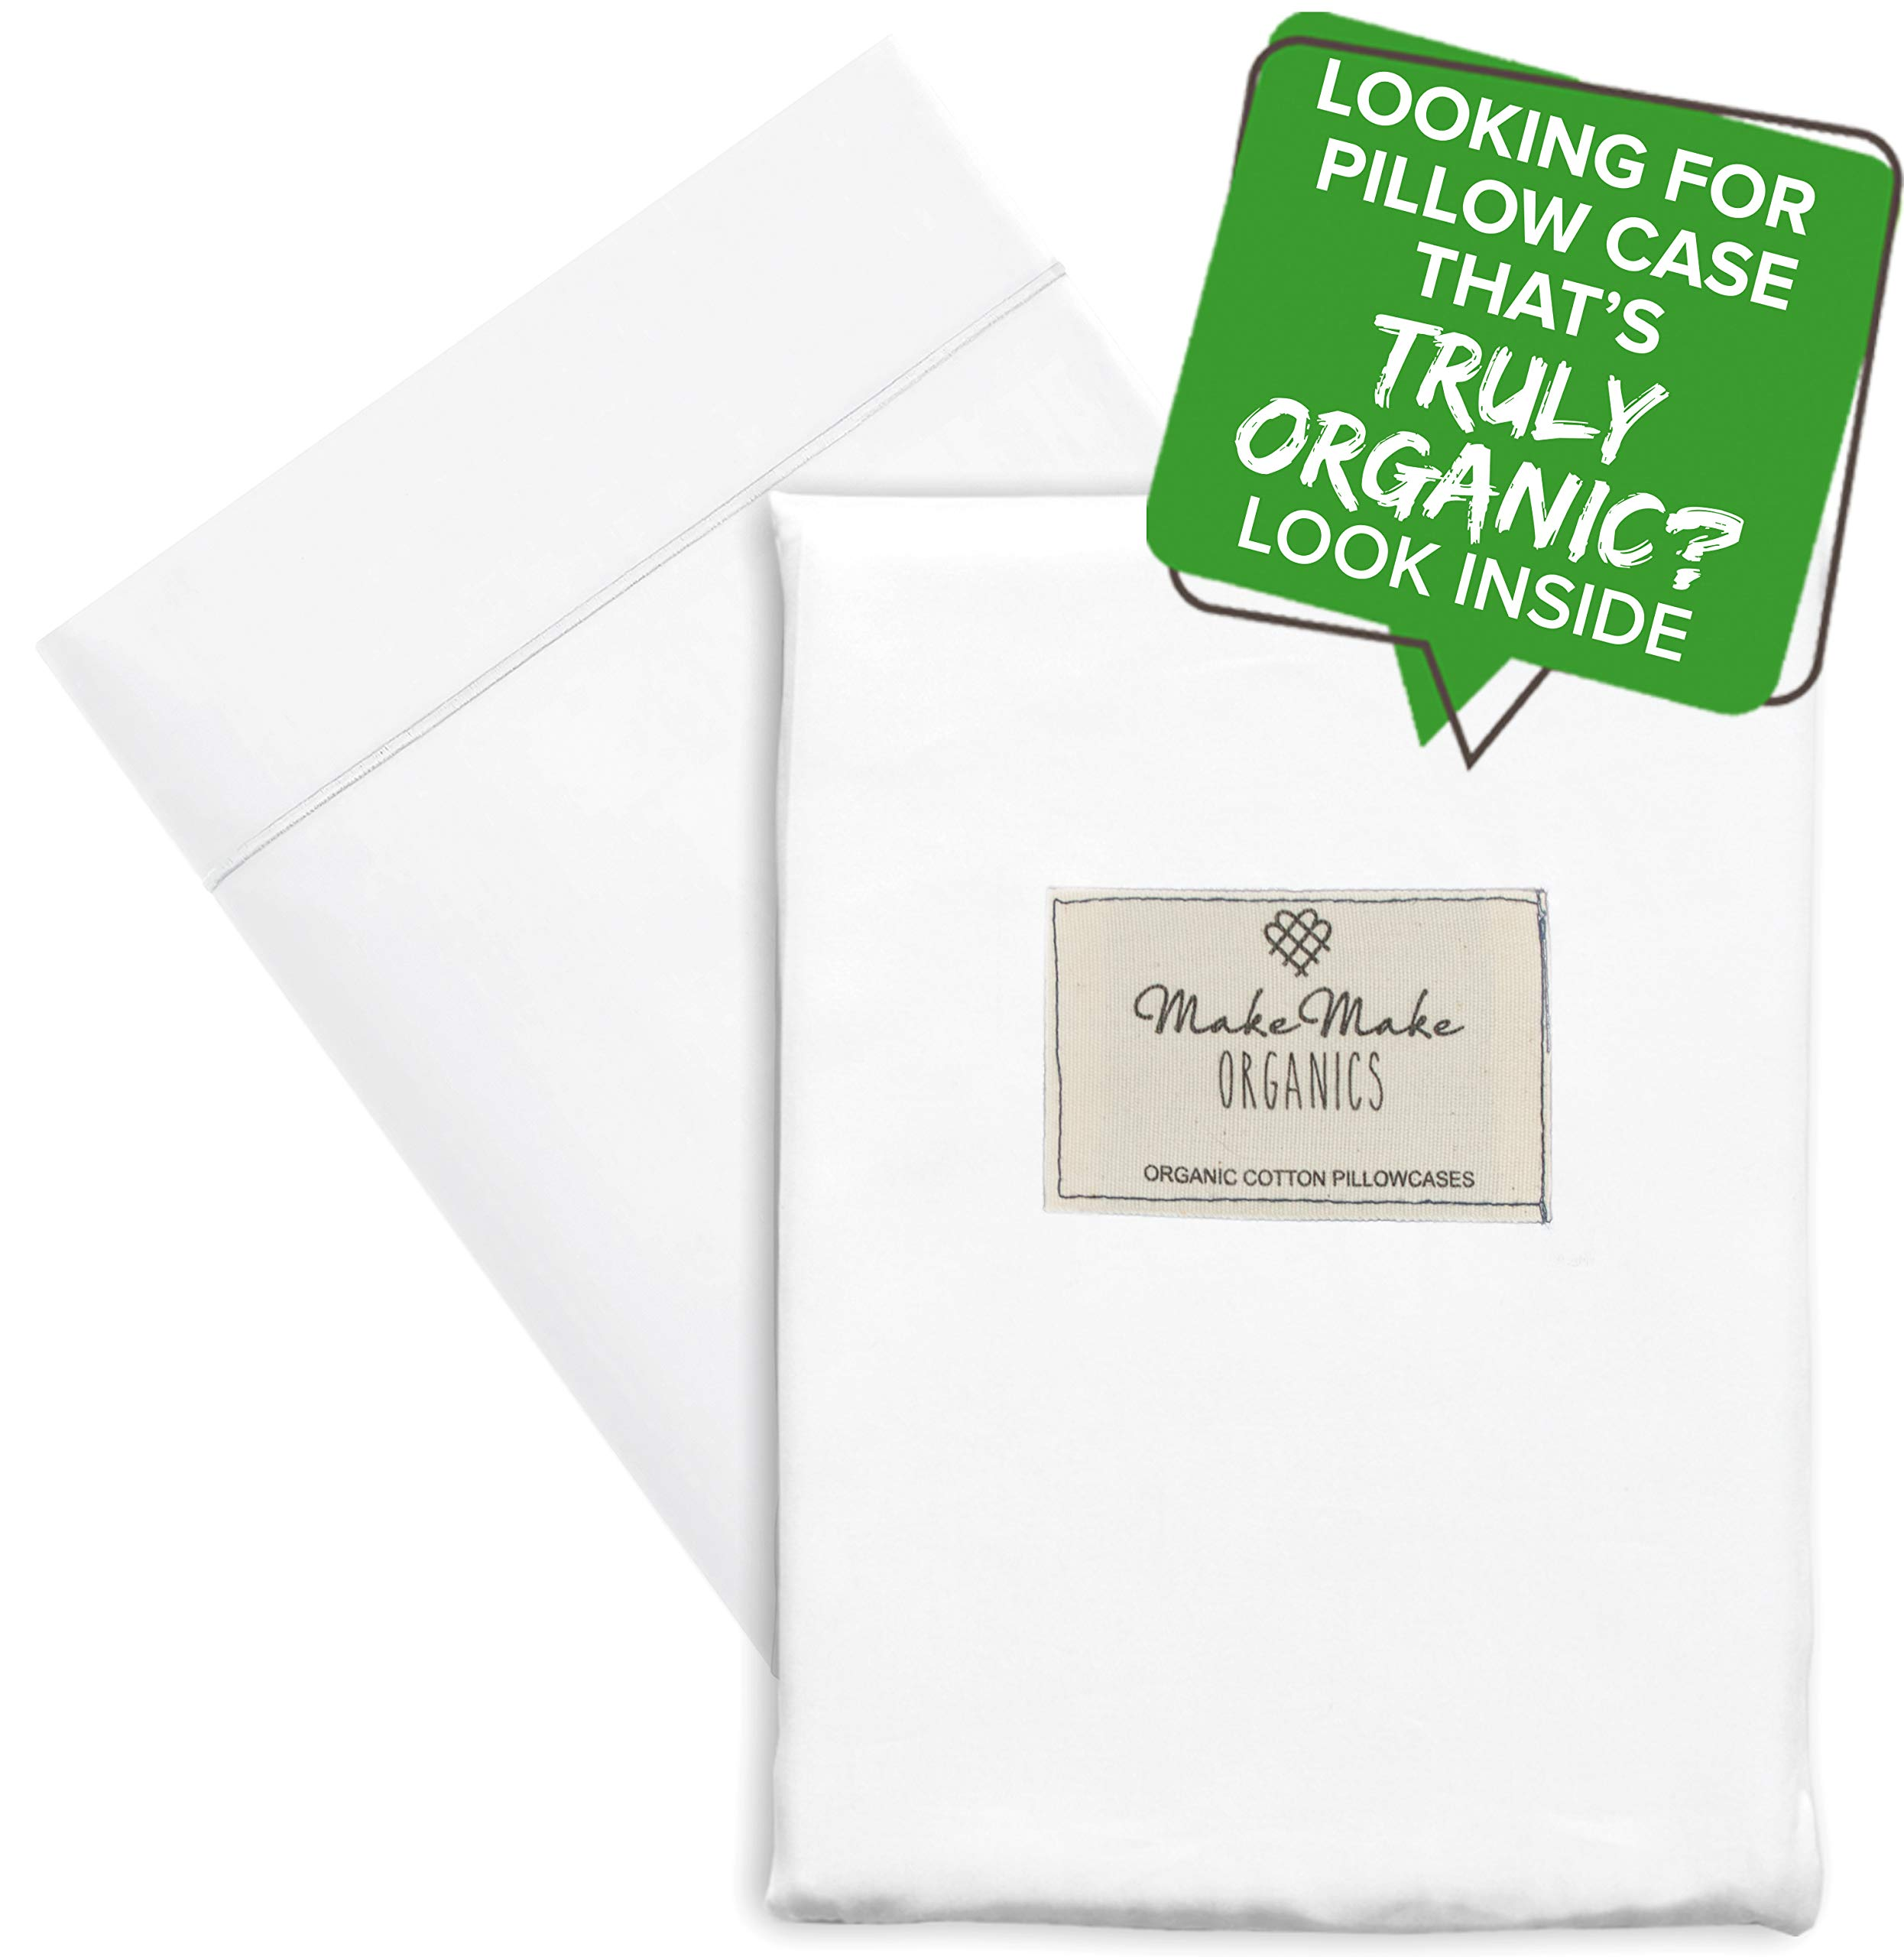 MakeMake Organics Organic Toddler Pillowcase (Set of 2) GOTS Certified Organic Cotton Pillowcase Toddlers Hypoallergenic Breathable Non Toxic Fits 13x18 Travel Toddler Pillows (14x19, Bright White)